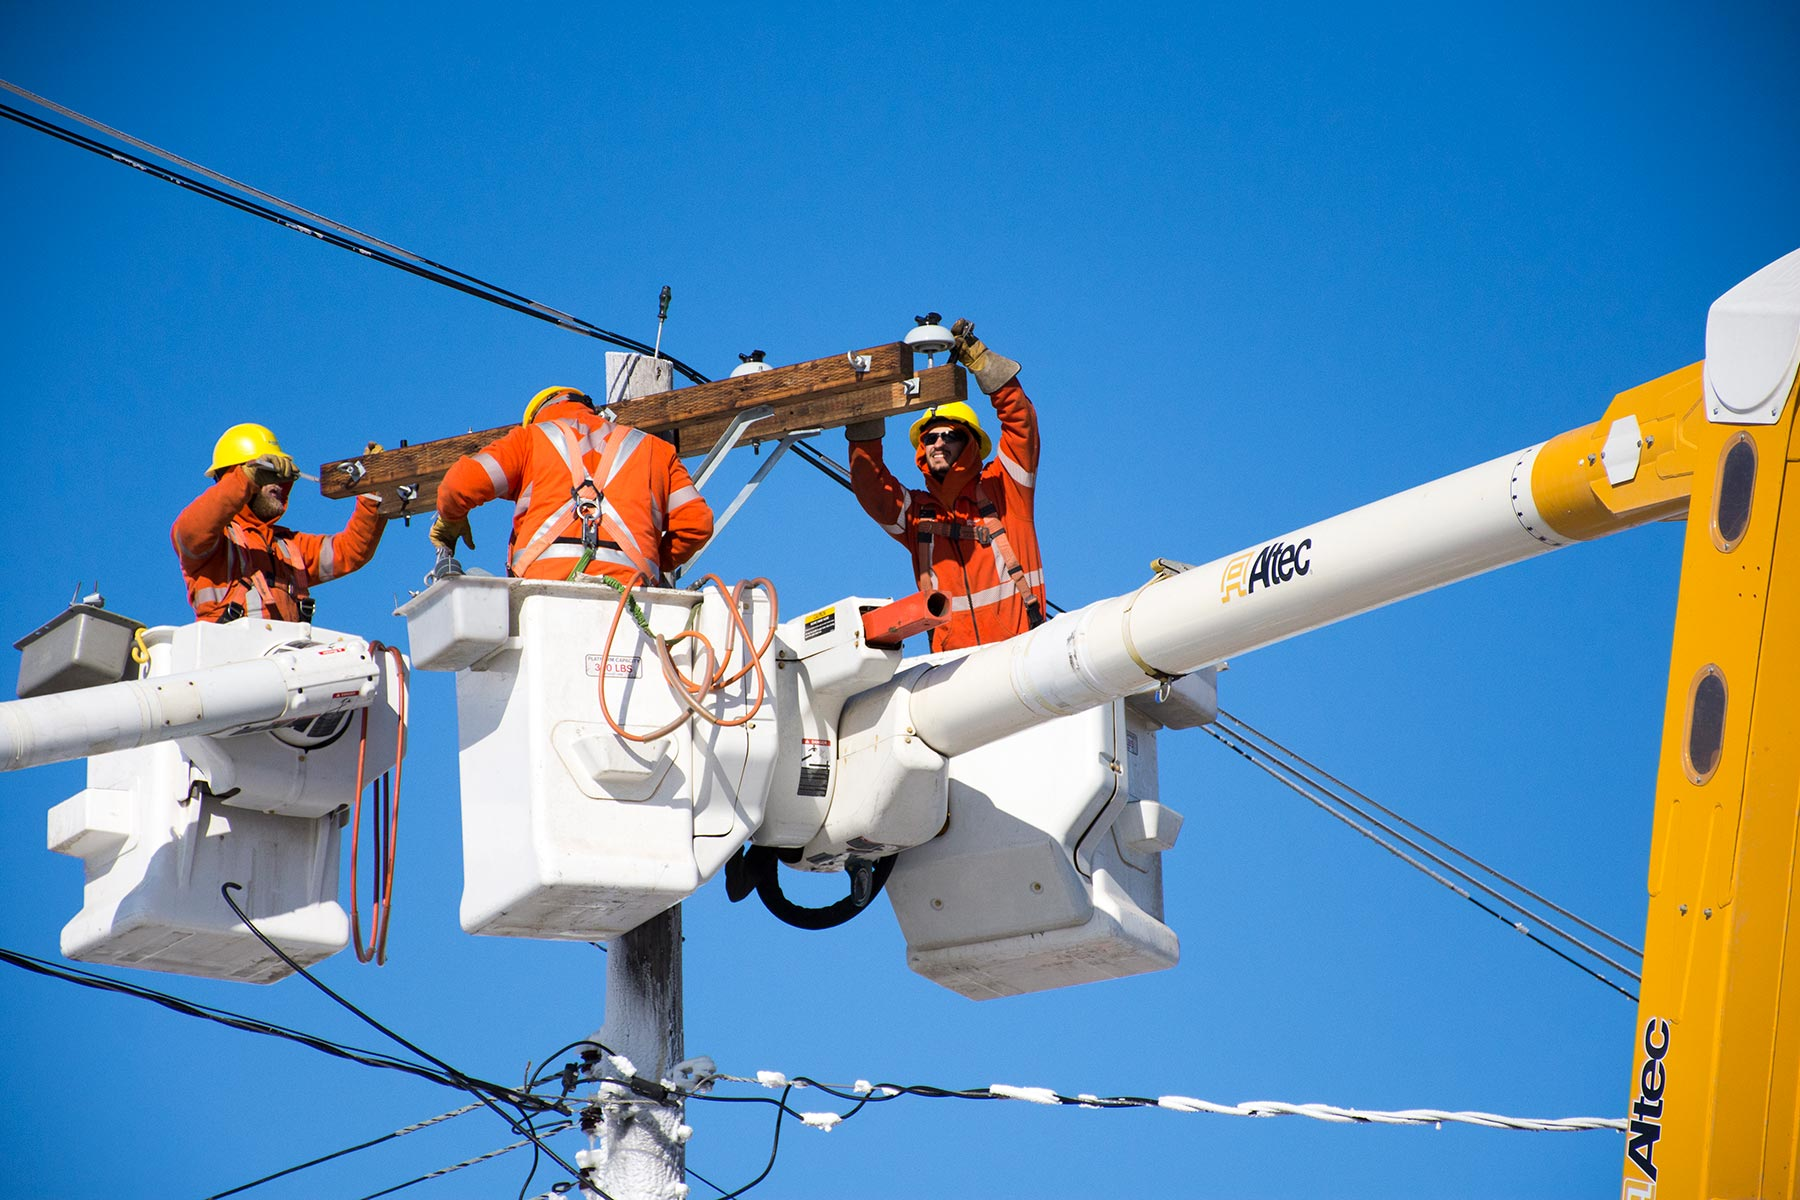 Manitoba Hydro crews restoring power after an outage.